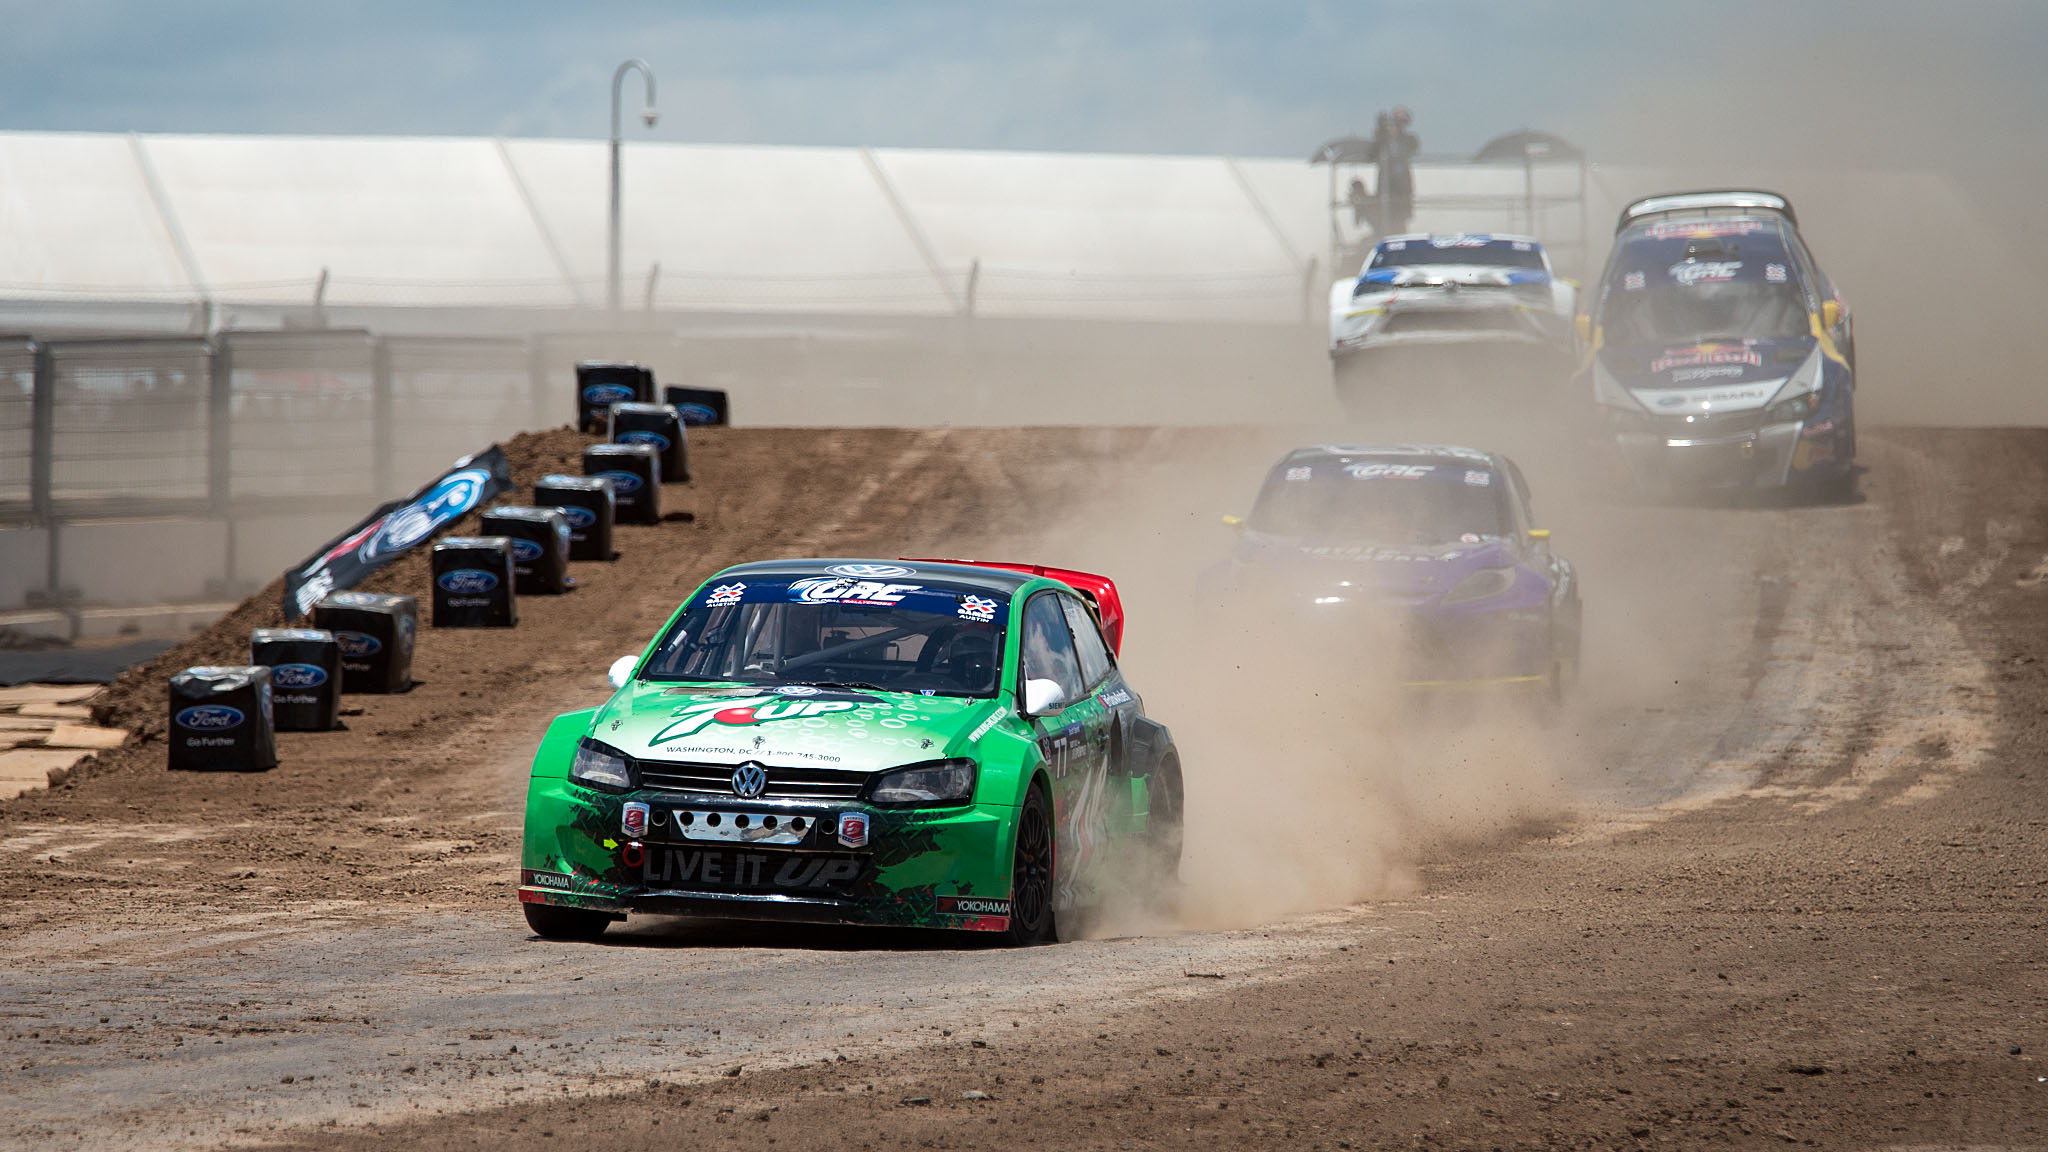 Scott Speed made his Formula One debut in 2006 and transitioned to rallycross in 2013.